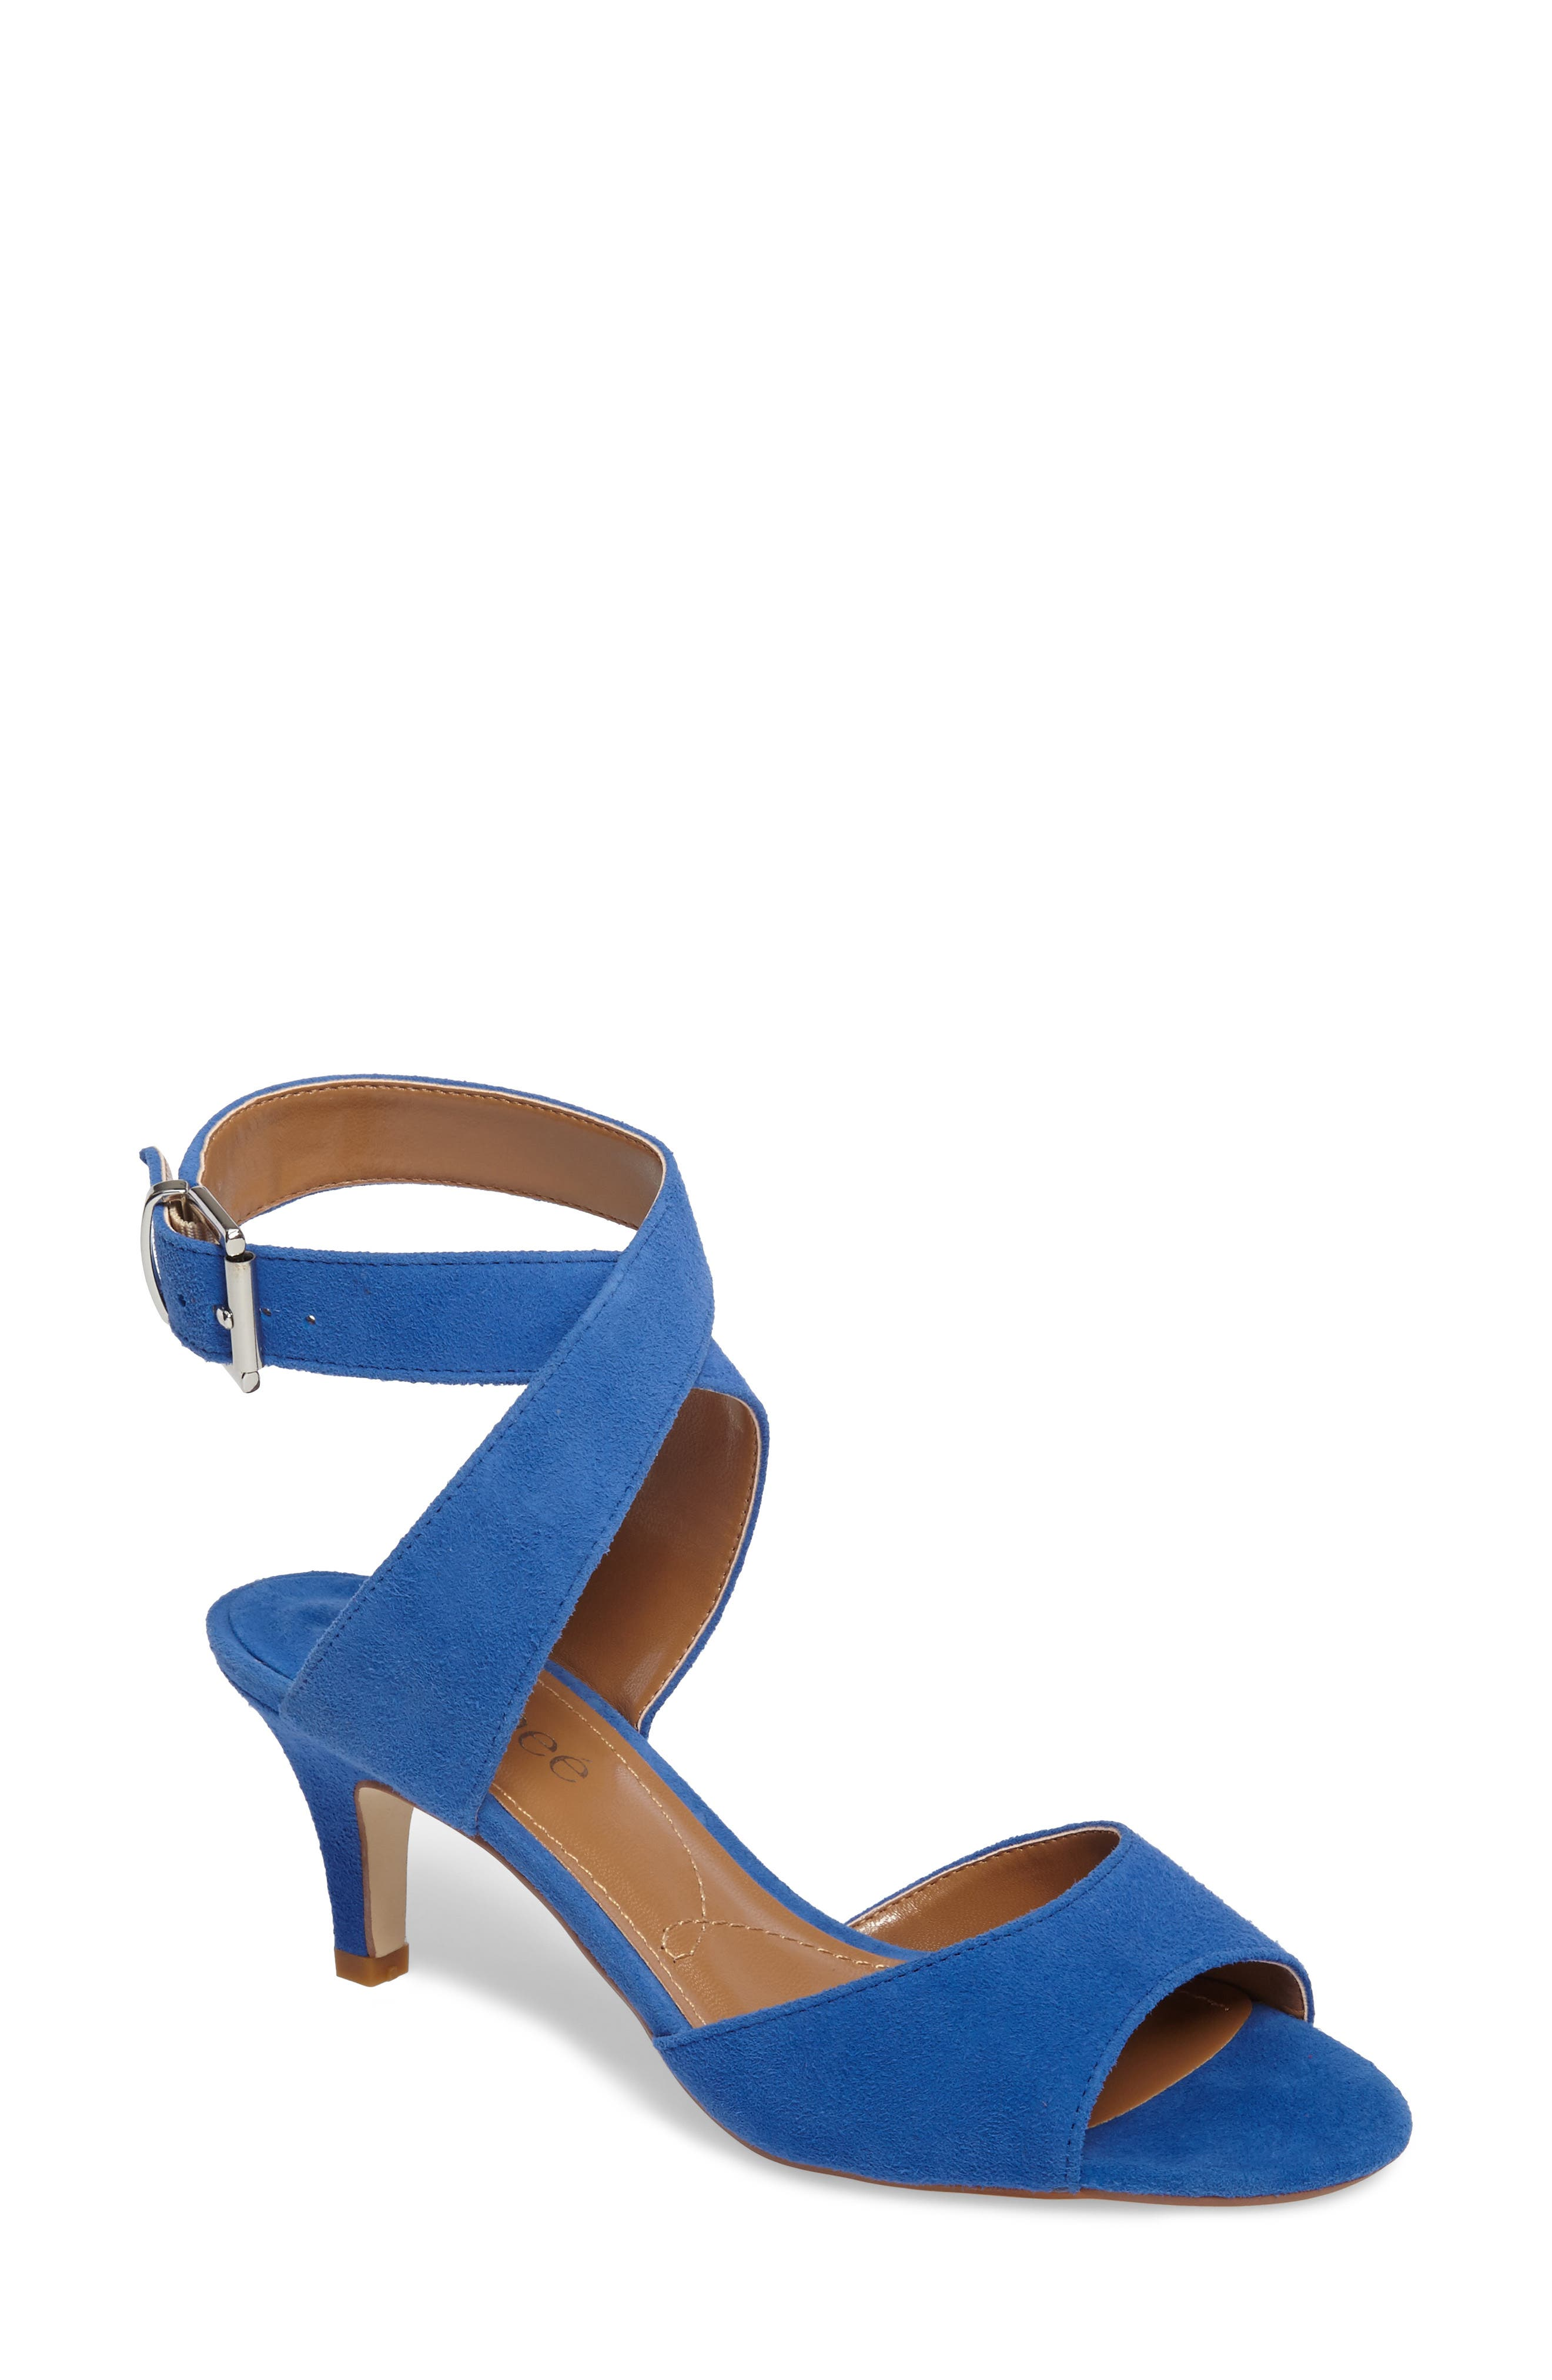 'Soncino' Ankle Strap Sandal,                         Main,                         color, BLUE FABRIC